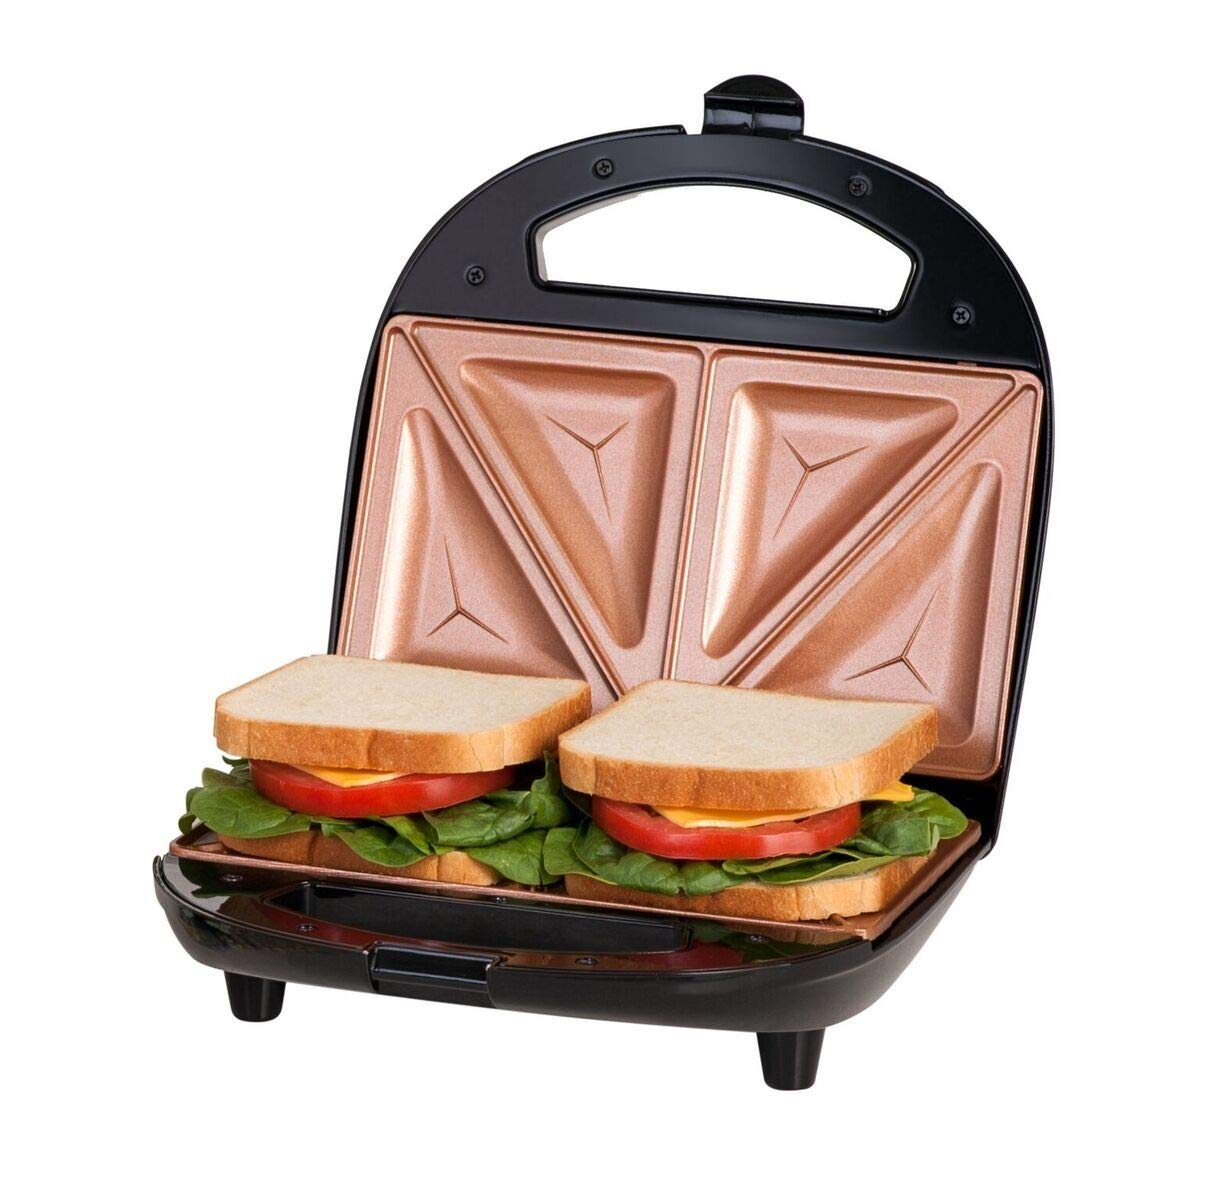 Gotham Steel Sandwich Maker, Toaster and Electric Panini Grill with Ultra Nonstick Copper Surface – Makes 2 Sandwiches in Minutes with Virtually No Clean Up, with Easy Cut Edges and Indicator Lights